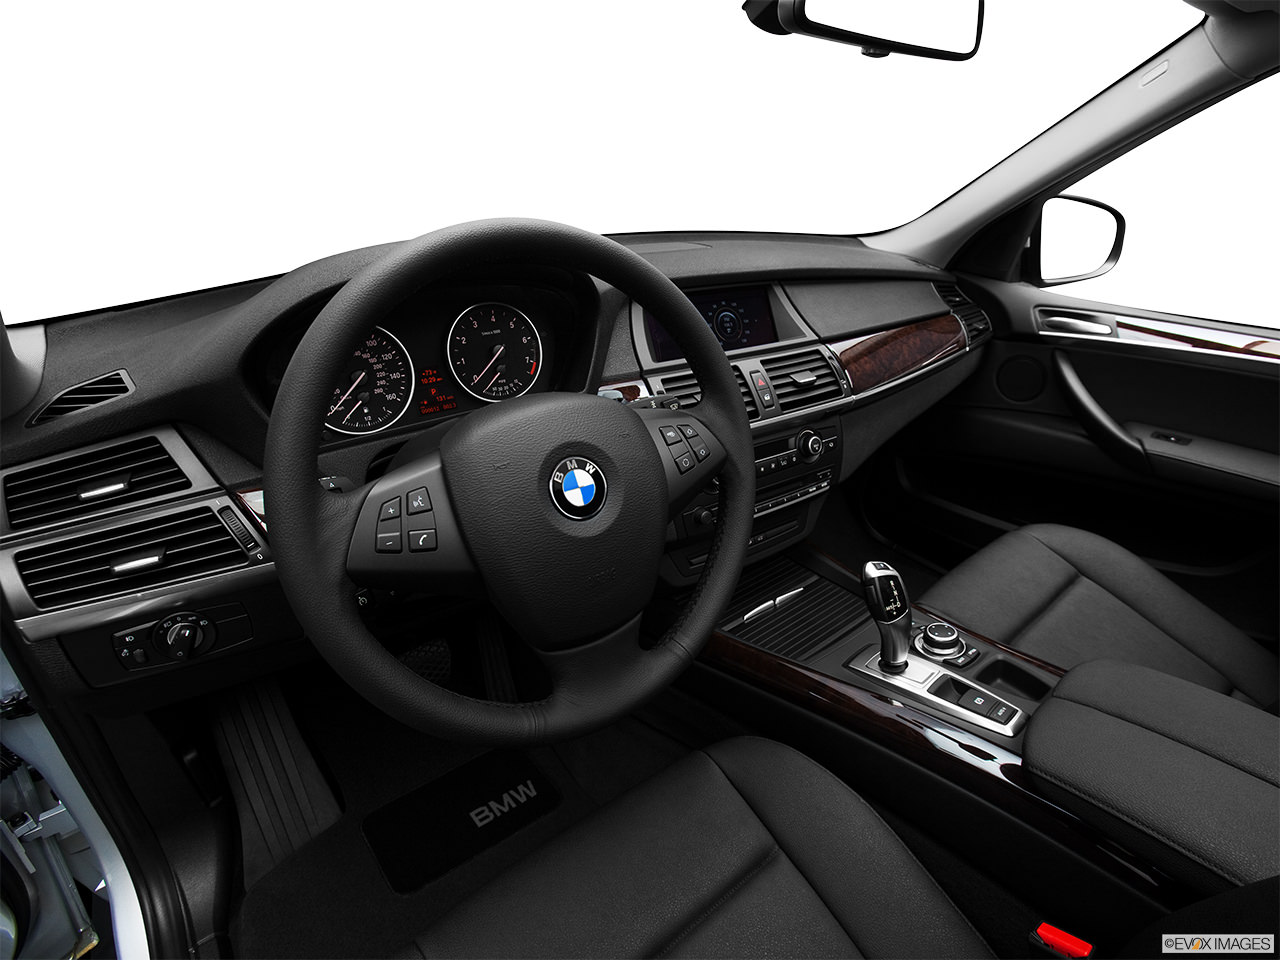 BMW X5 xDrive35d Interior